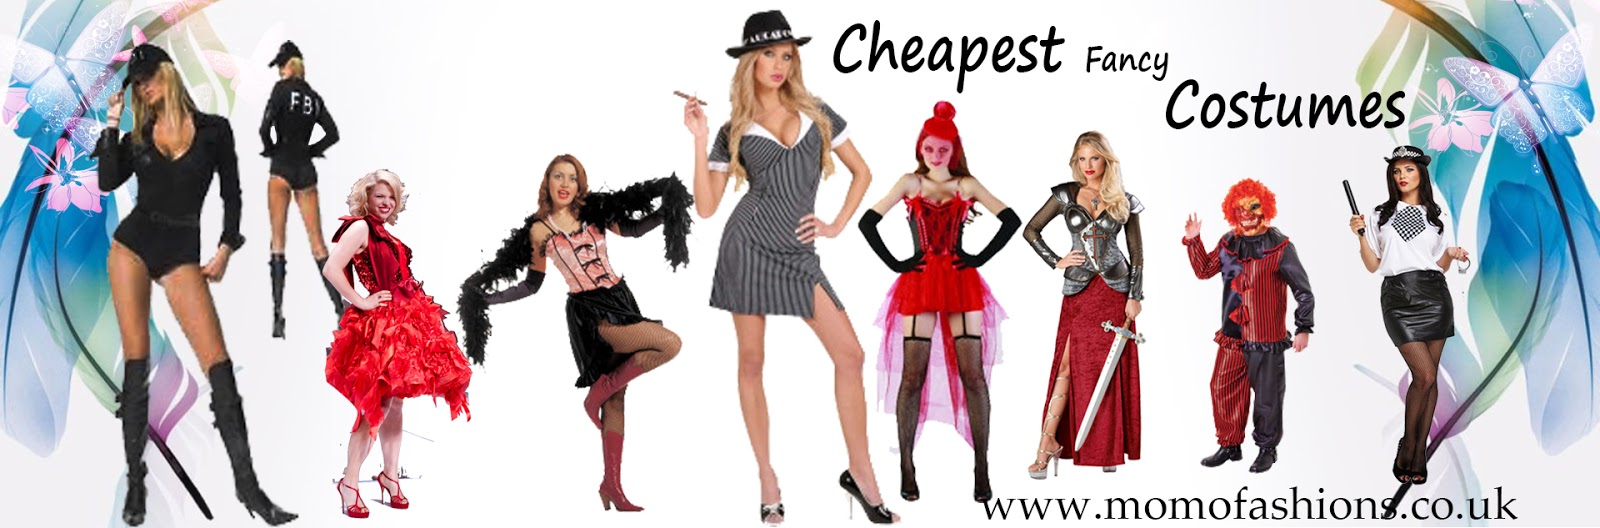 Cheapest Fancy Dress Costumes and Cheapest Fancydress from Momo Fashions  sc 1 st  Momo Fashions in Manchester. & Cheapest Fancy Dress Costumes and Cheapest Fancydress from Momo ...